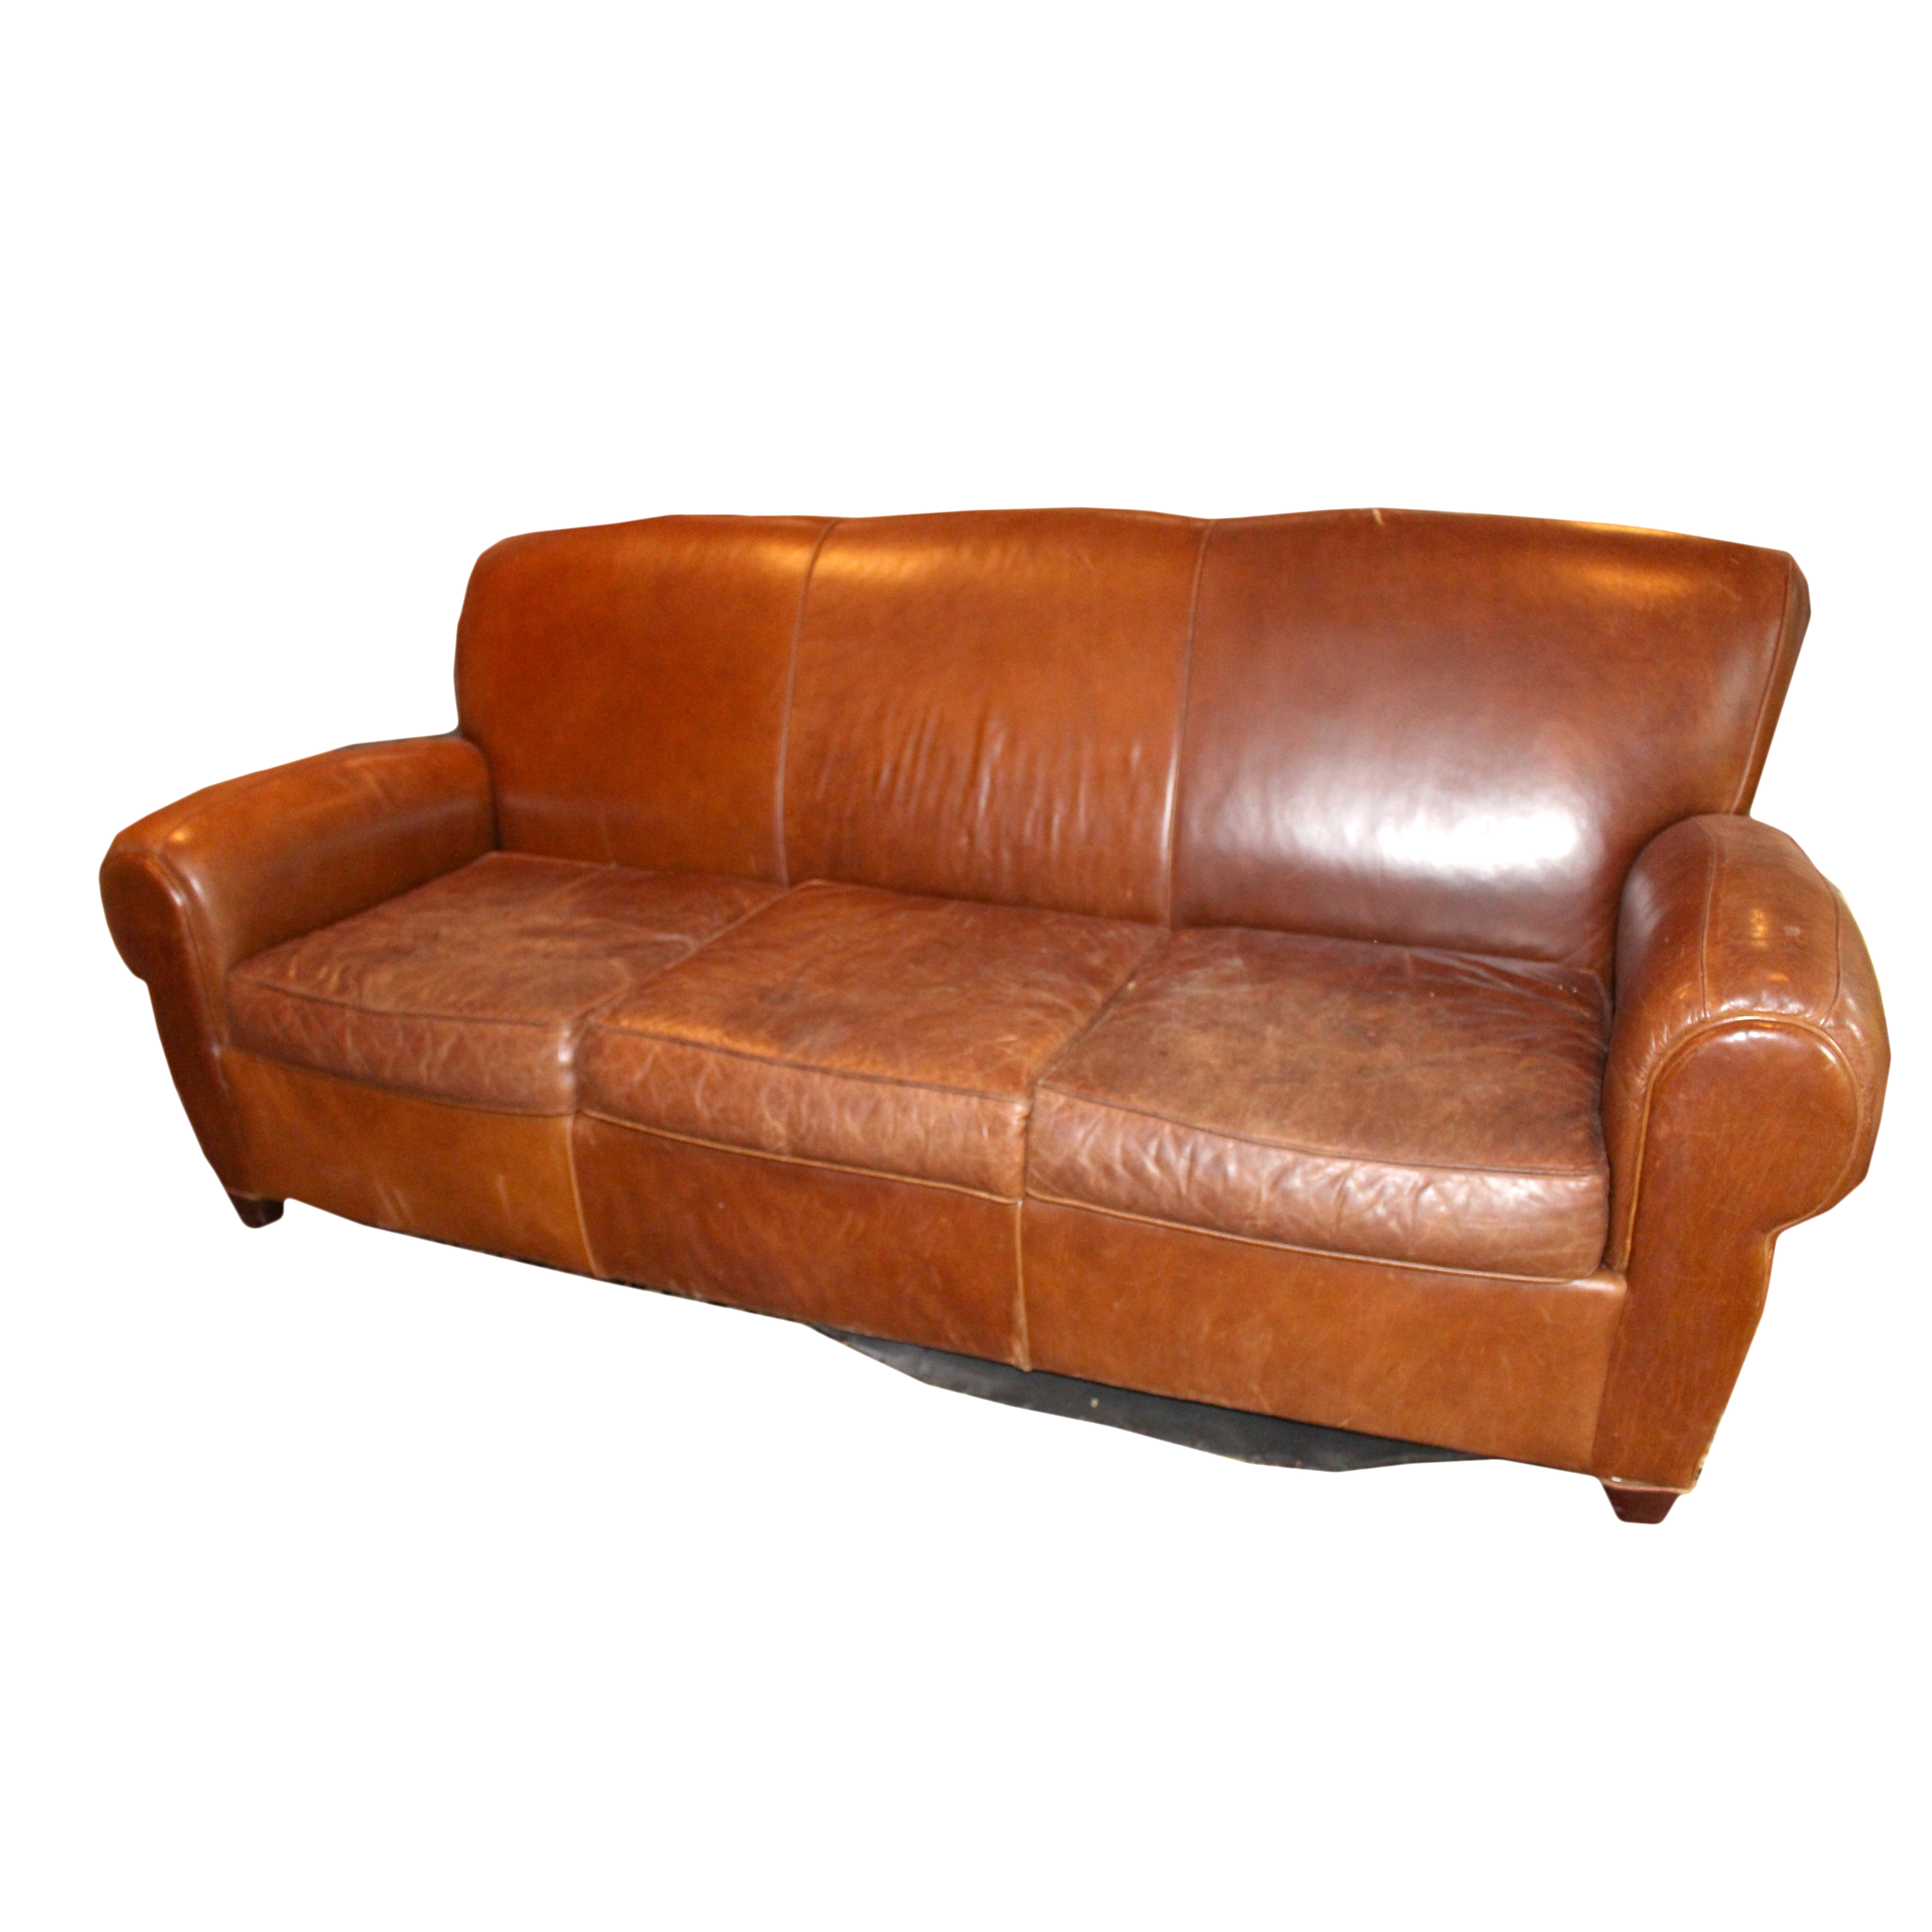 leather sofa like pottery barn houston bed natural by mitchell gold for ebth